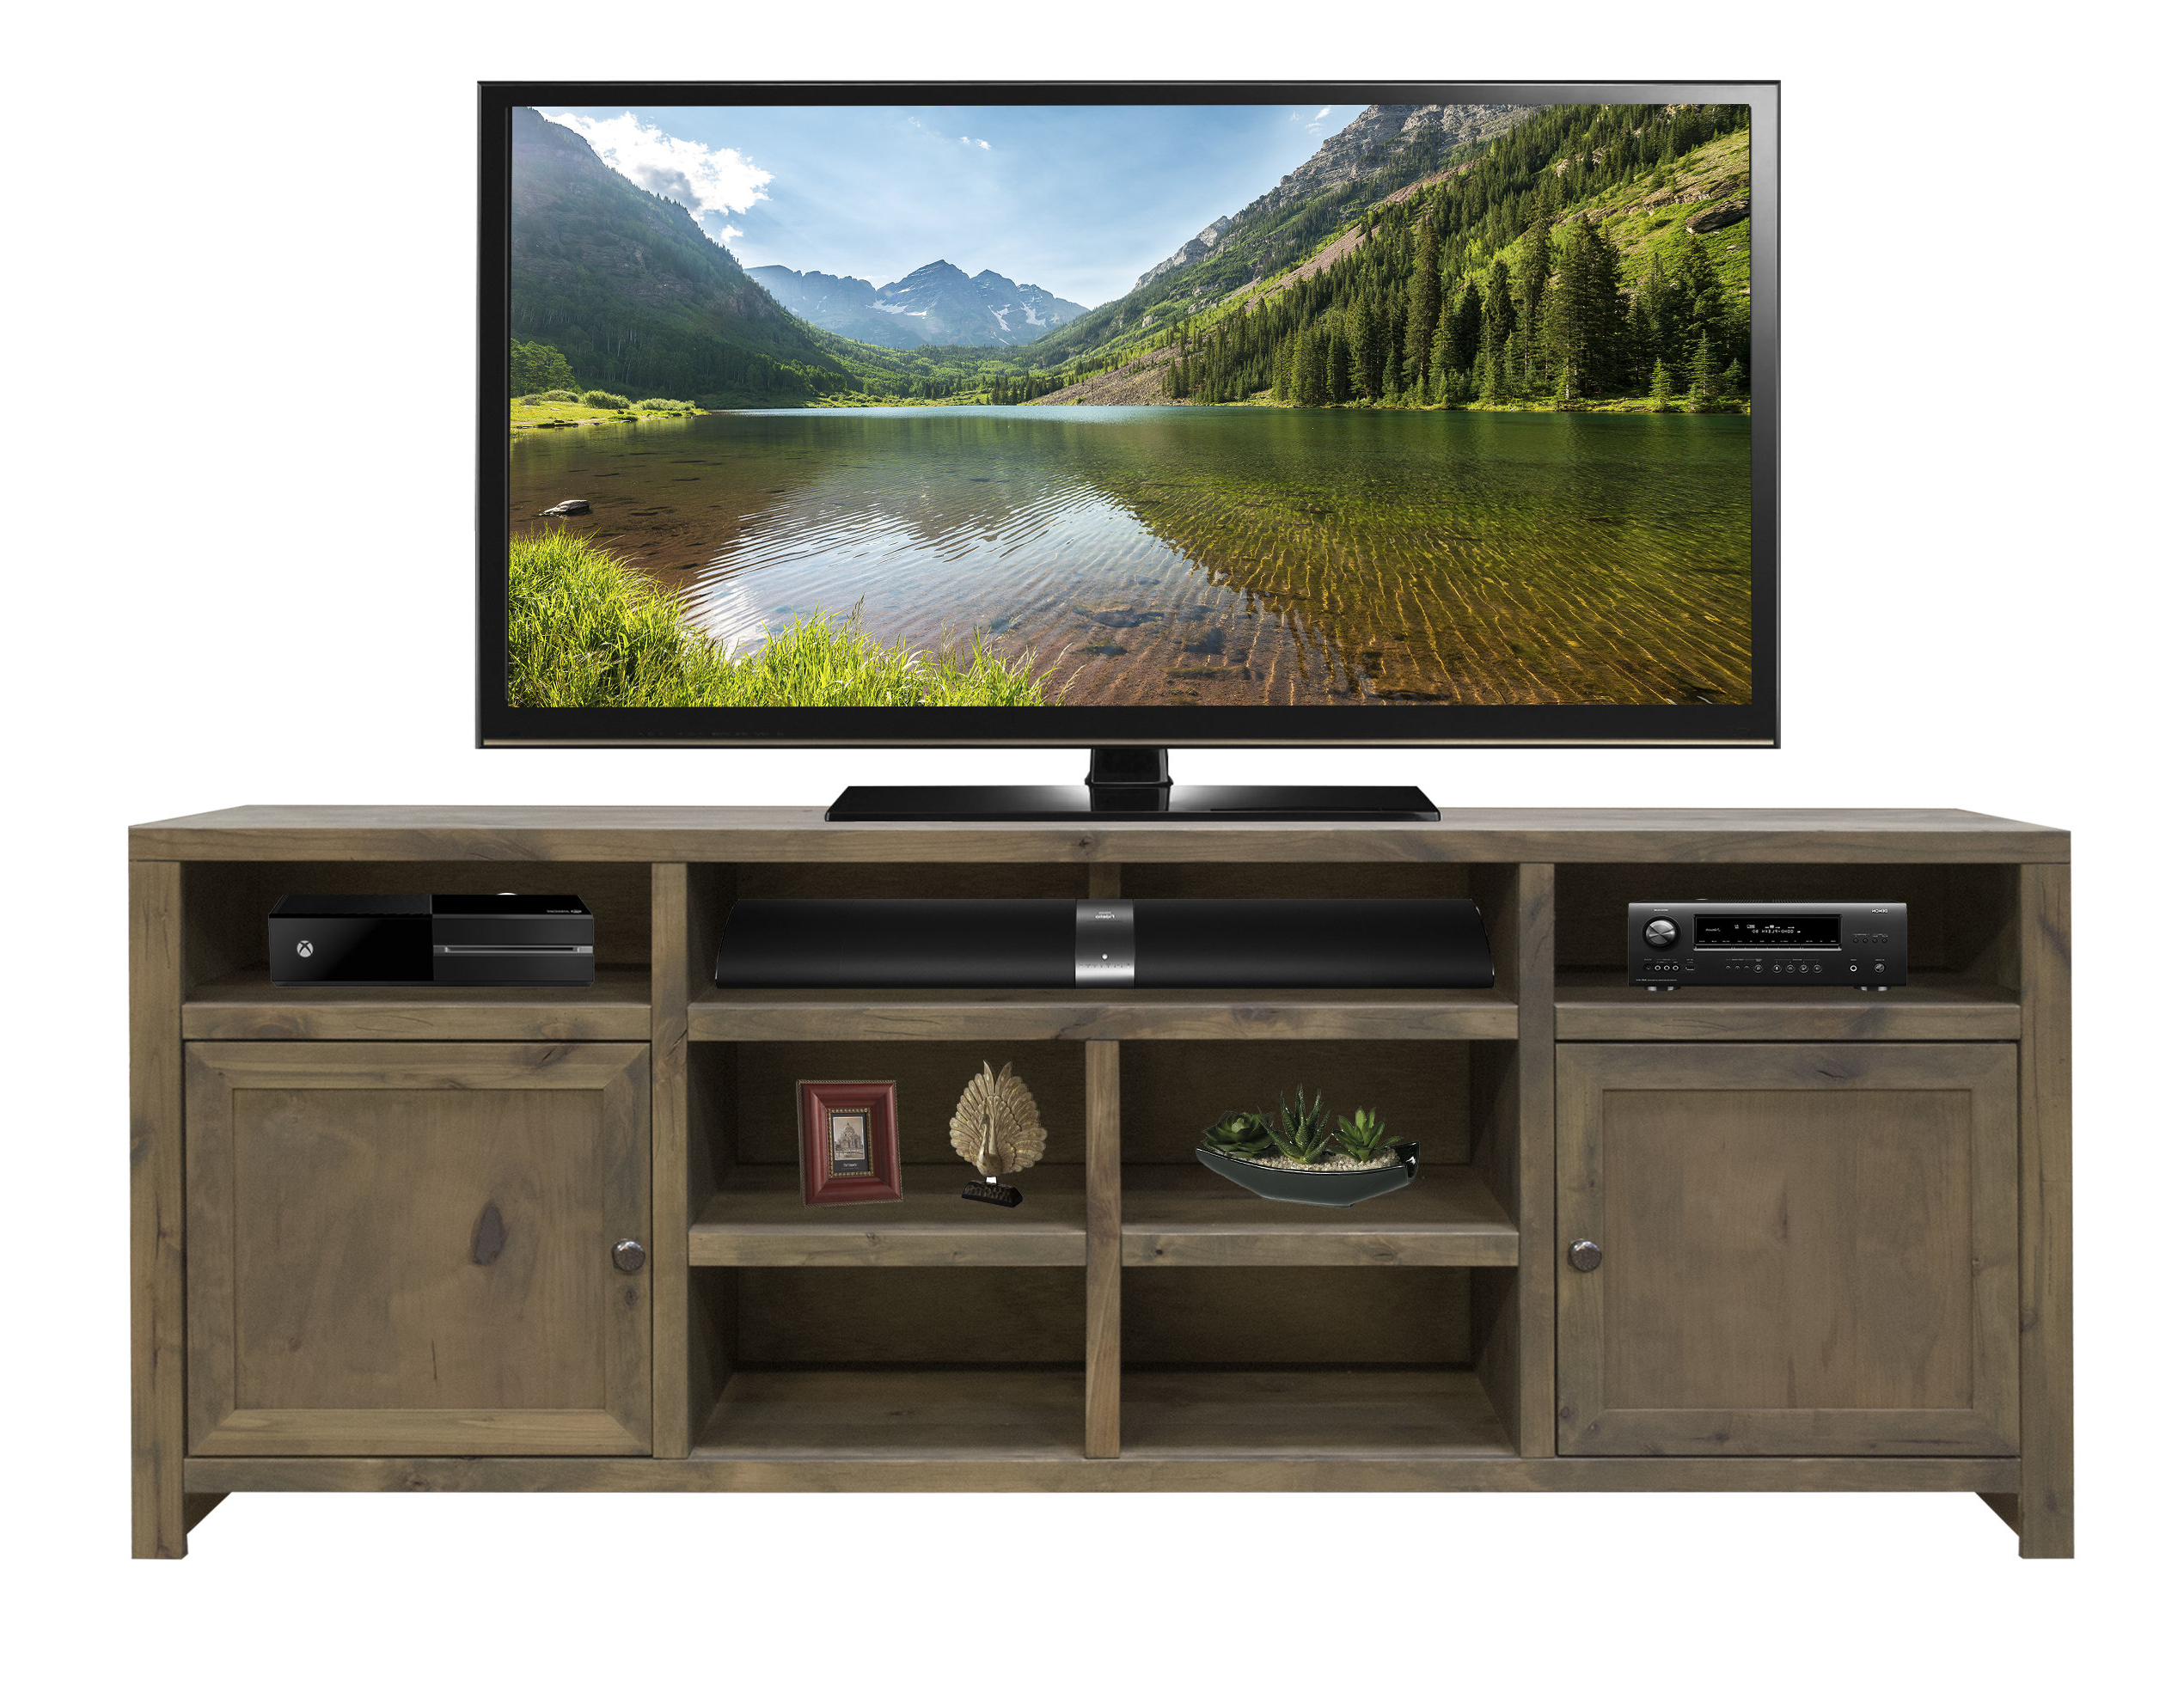 70 Inch Tv Stands | Joss & Main Intended For Canyon 74 Inch Tv Stands (View 2 of 20)